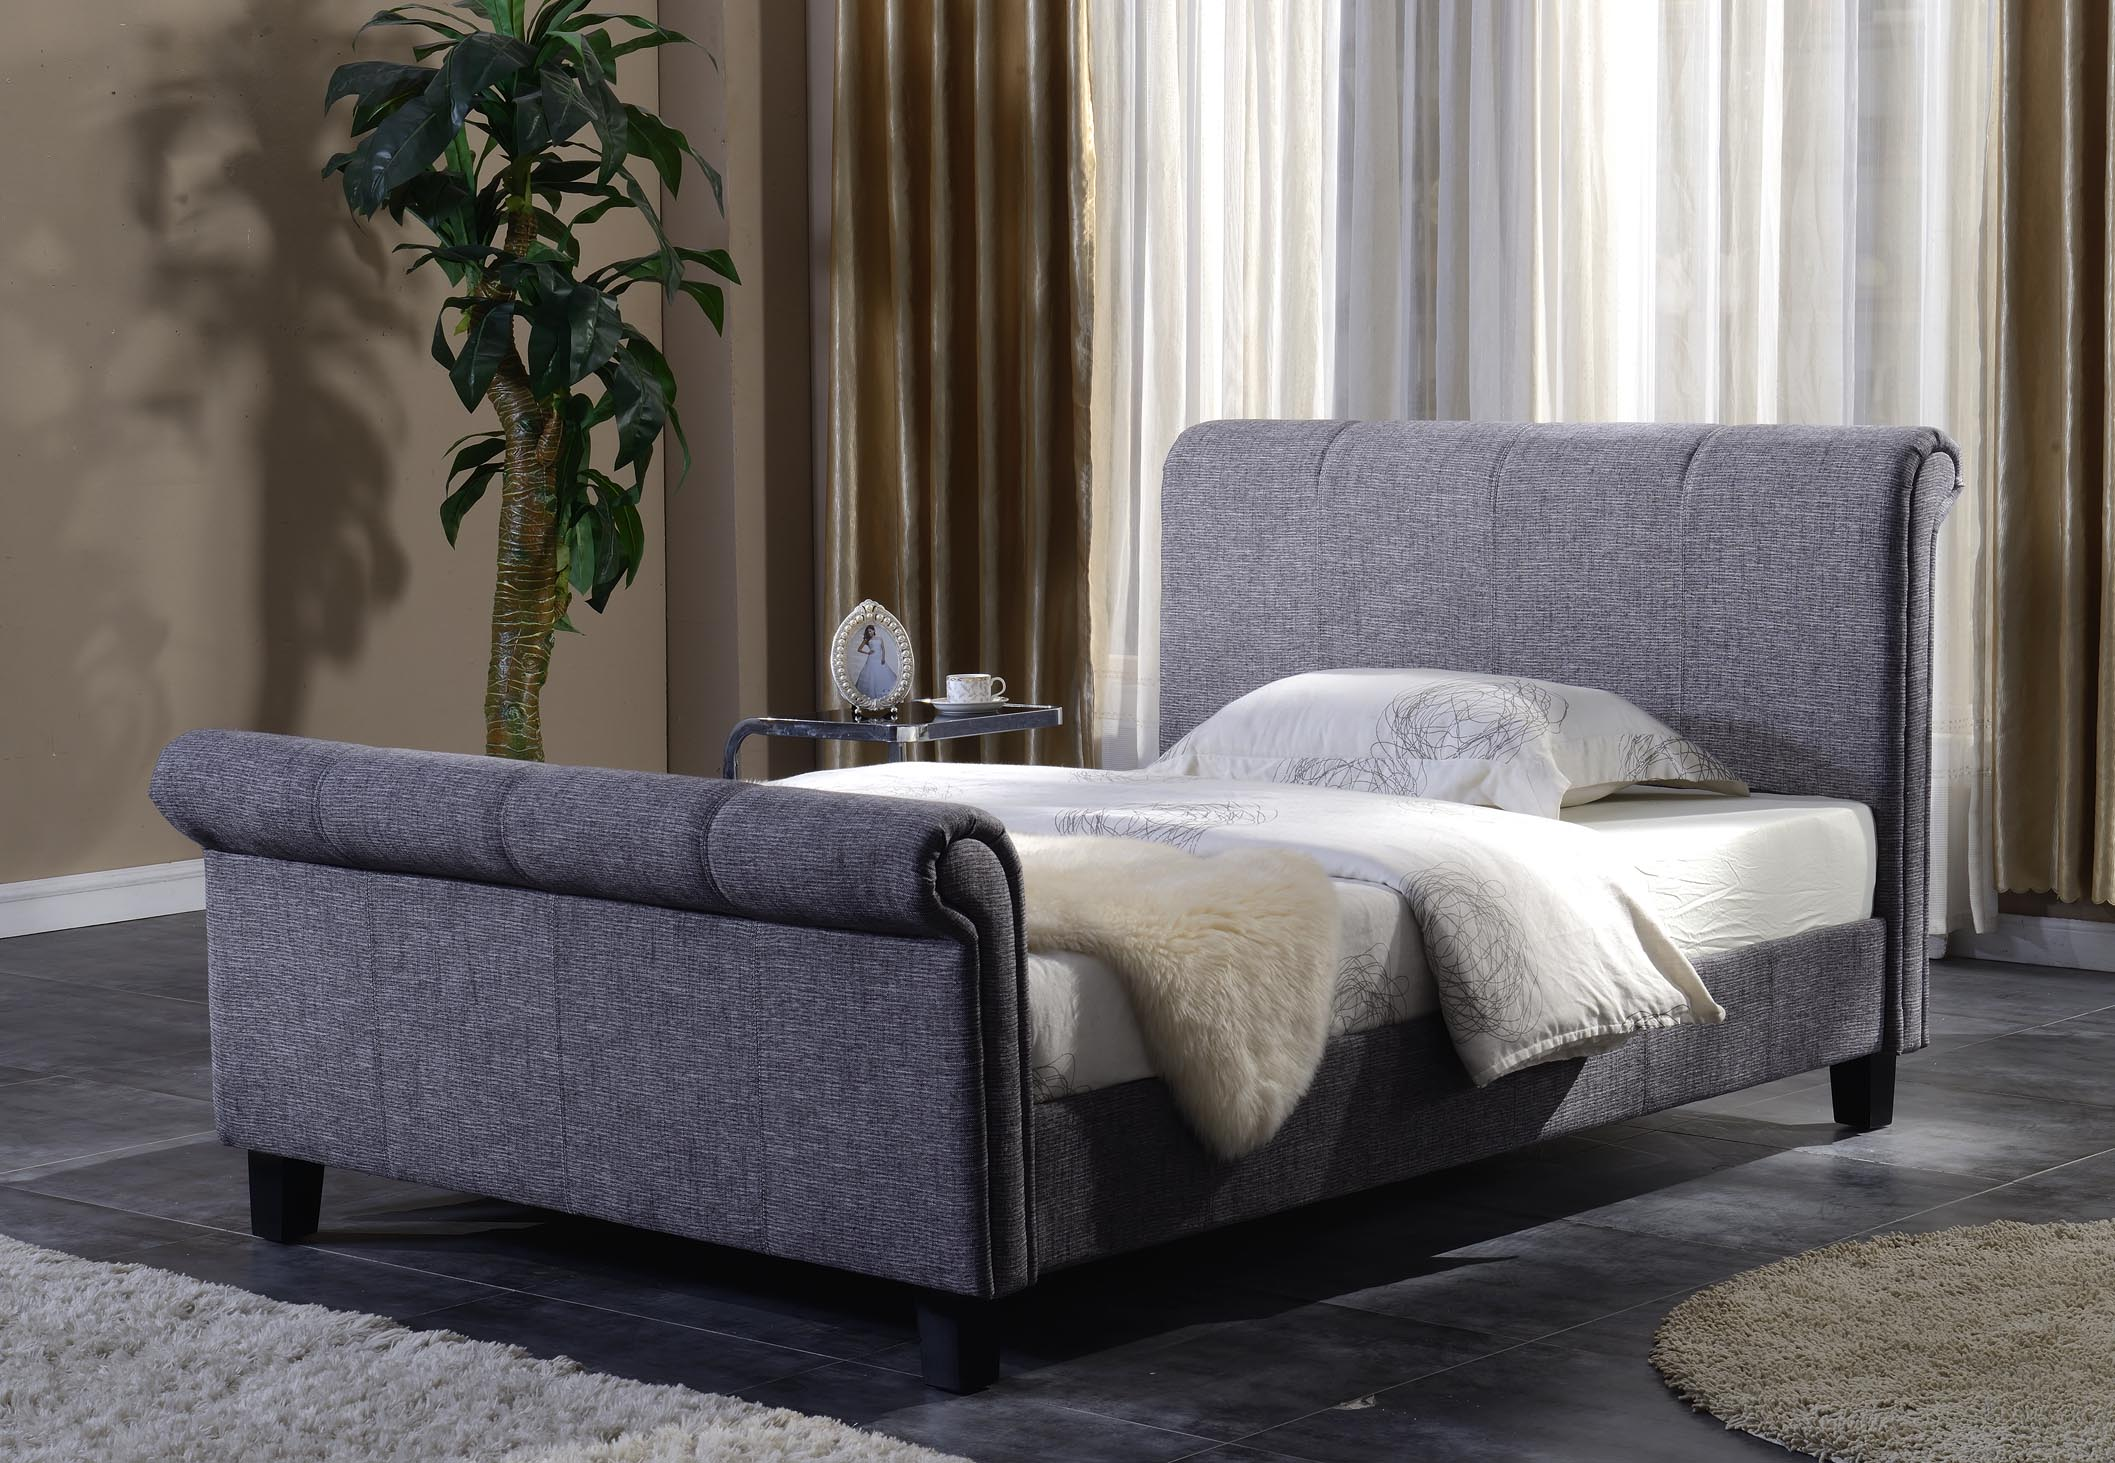 bed height signature ashley beds threshold products louis queen by sleigh width anarasiaqueen anarasia design philippe item trim